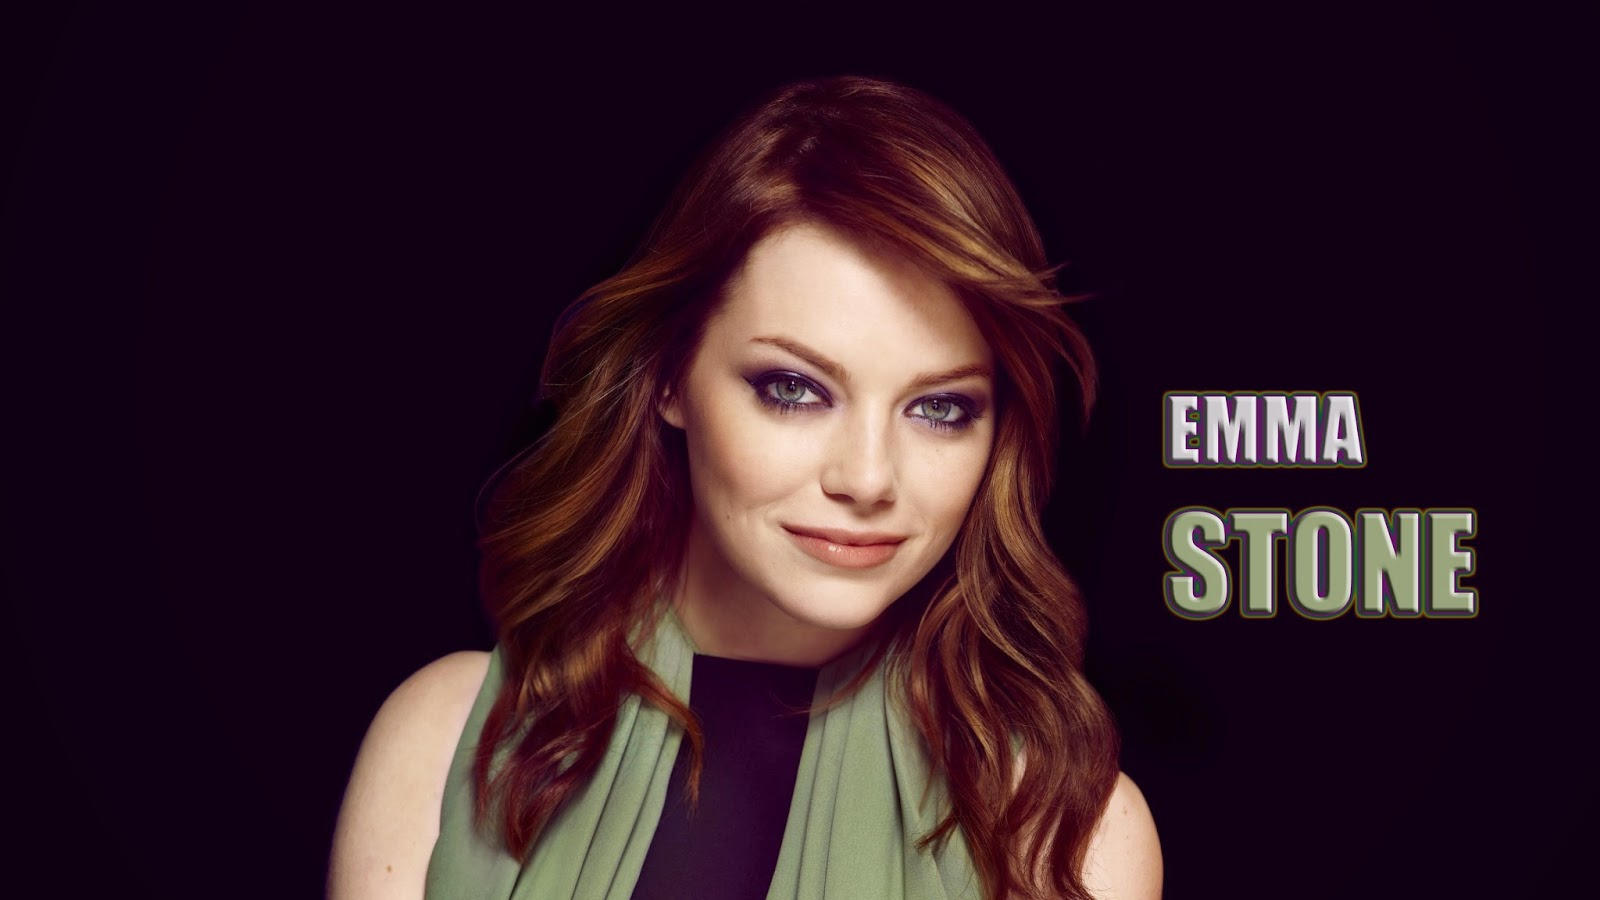 Emily Jean Stone Full Hd Wallpapers moreover For The Birds Controversy 20254 as well Craig Mccracken Confirms Wander Over Yonder Finished 137583 together with The 30 Greatest War Films In Cinema History in addition Blue Sky Earns First Ever Golden Globe Nomination Peanuts Movie 125631. on golden globe award for best animated feature film